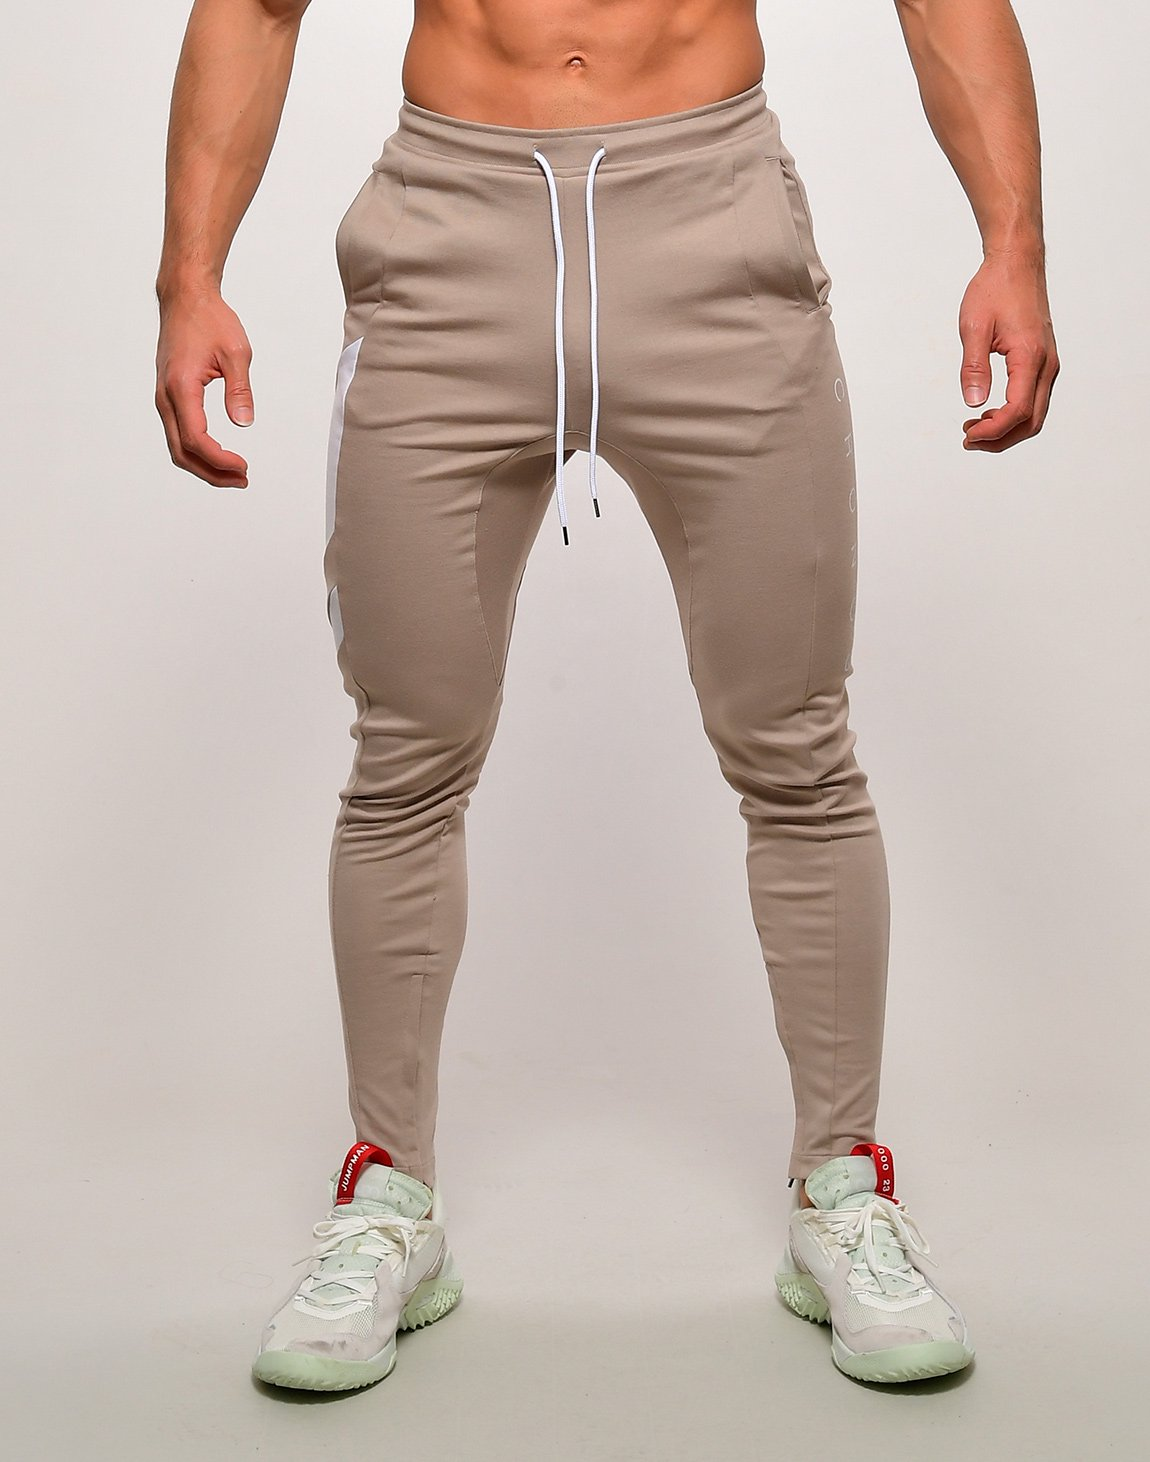 <img class='new_mark_img1' src='https://img.shop-pro.jp/img/new/icons55.gif' style='border:none;display:inline;margin:0px;padding:0px;width:auto;' />CRONOS SLANTED LINE PANTS【BEIGE】